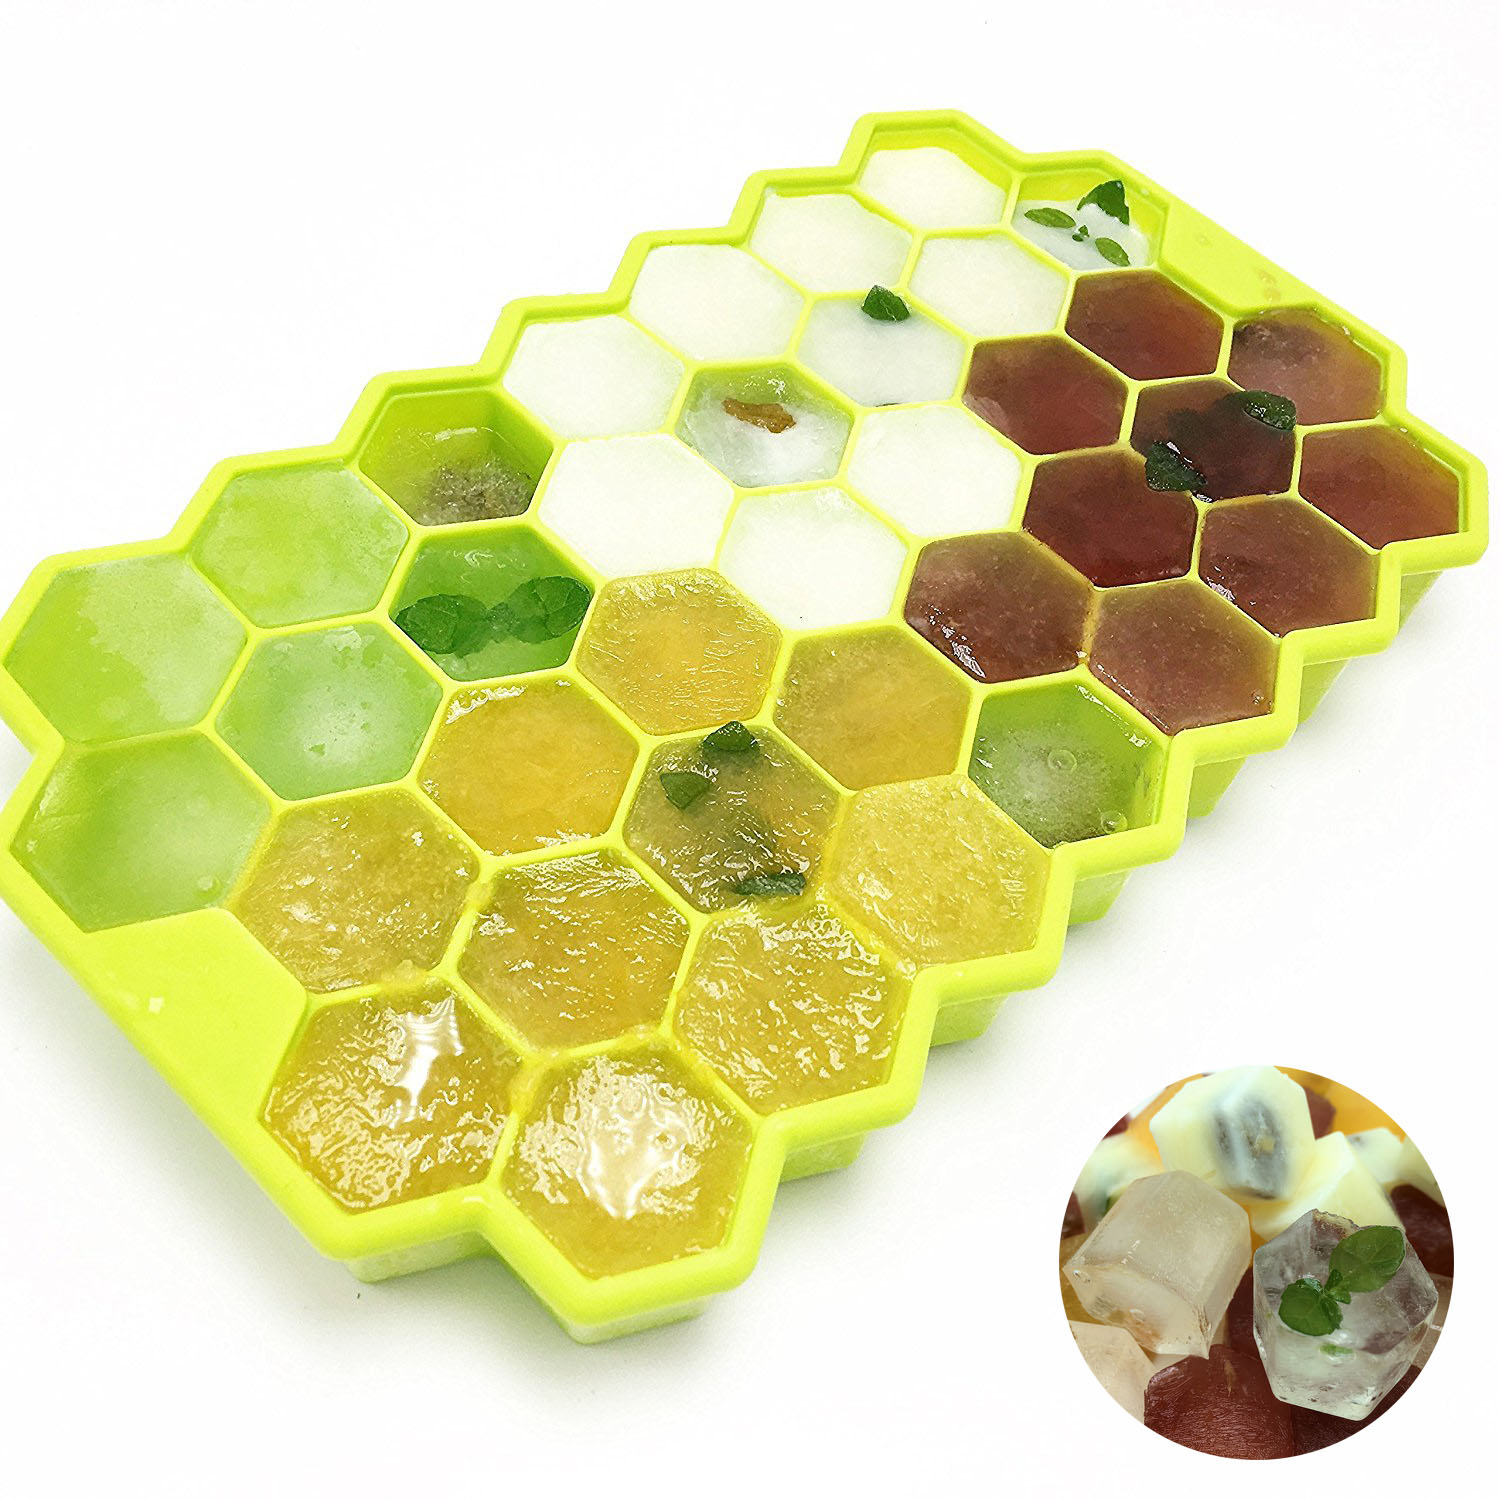 1PCS 37 Cavity Honeycomb Ice Form Silicone Ice Cream Maker Silicone Ice Cube Tray Silicone Mold DIY Cube Mold Kitchen Tools